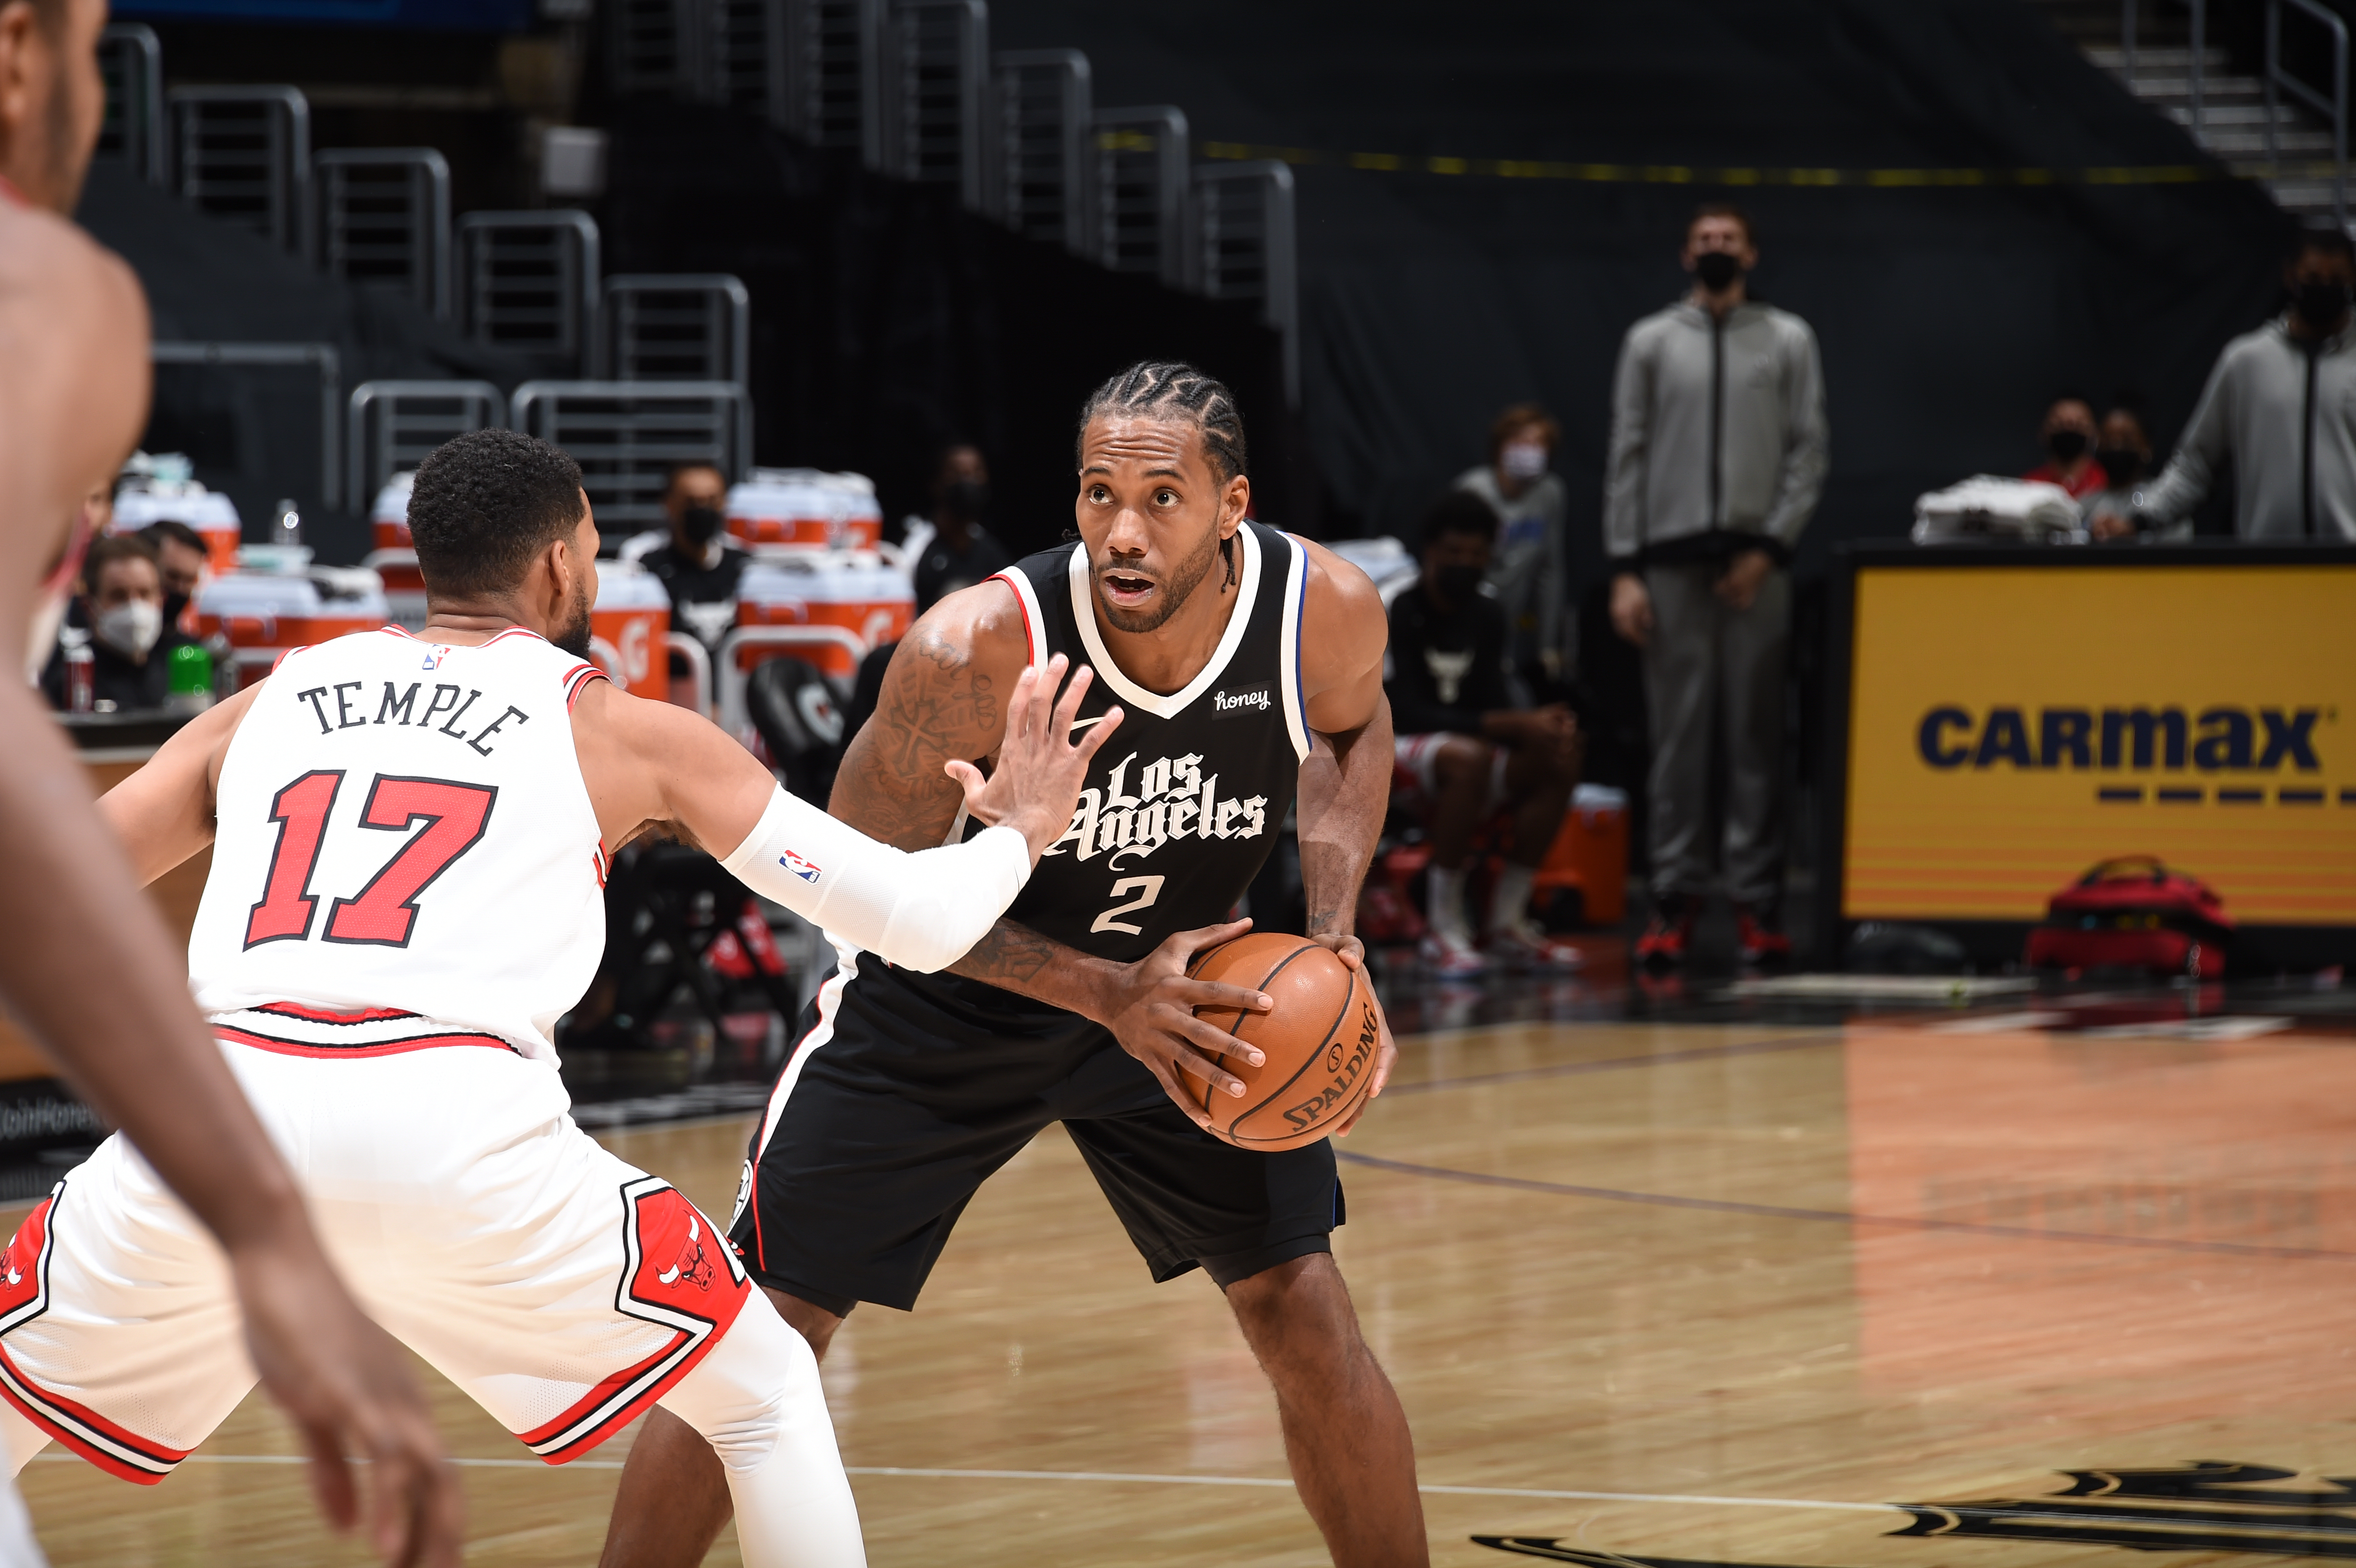 Kawhi Leonard of the LA Clippers looks to pass the ball during the game against the Chicago Bulls on January 10, 2021 at STAPLES Center in Los Angeles, California.